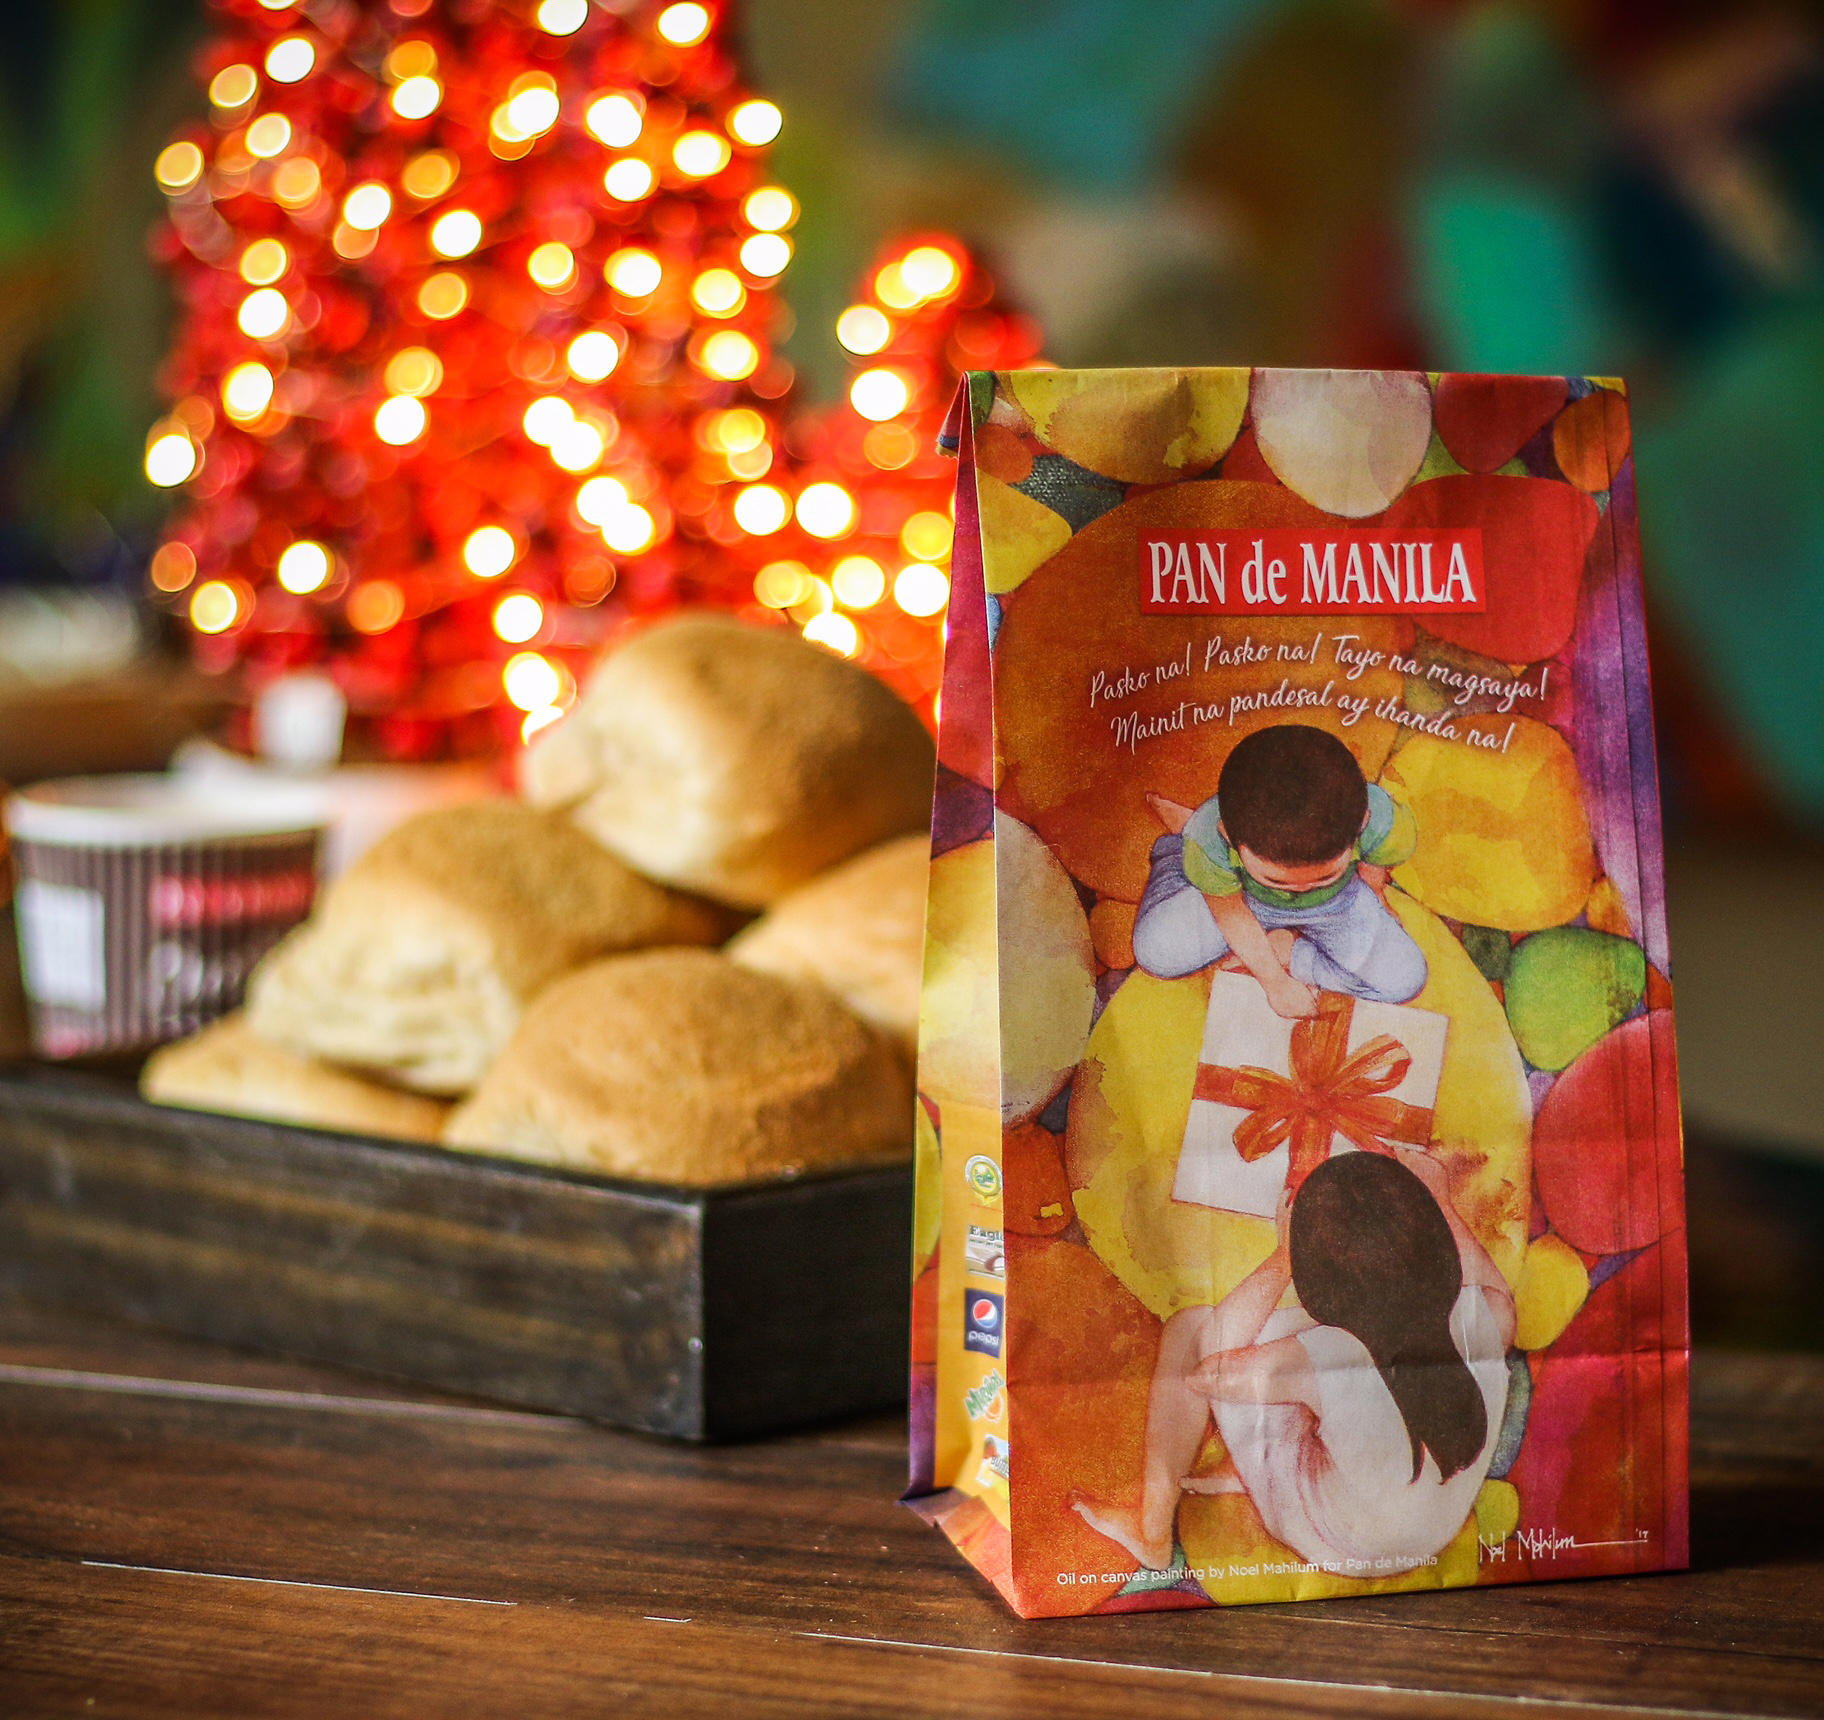 It's beginning to look a lot like Christmas at Pan de Manila, with its Christmas paper bags featuring the artwork of Antipolo-based artist Noel Mahilum